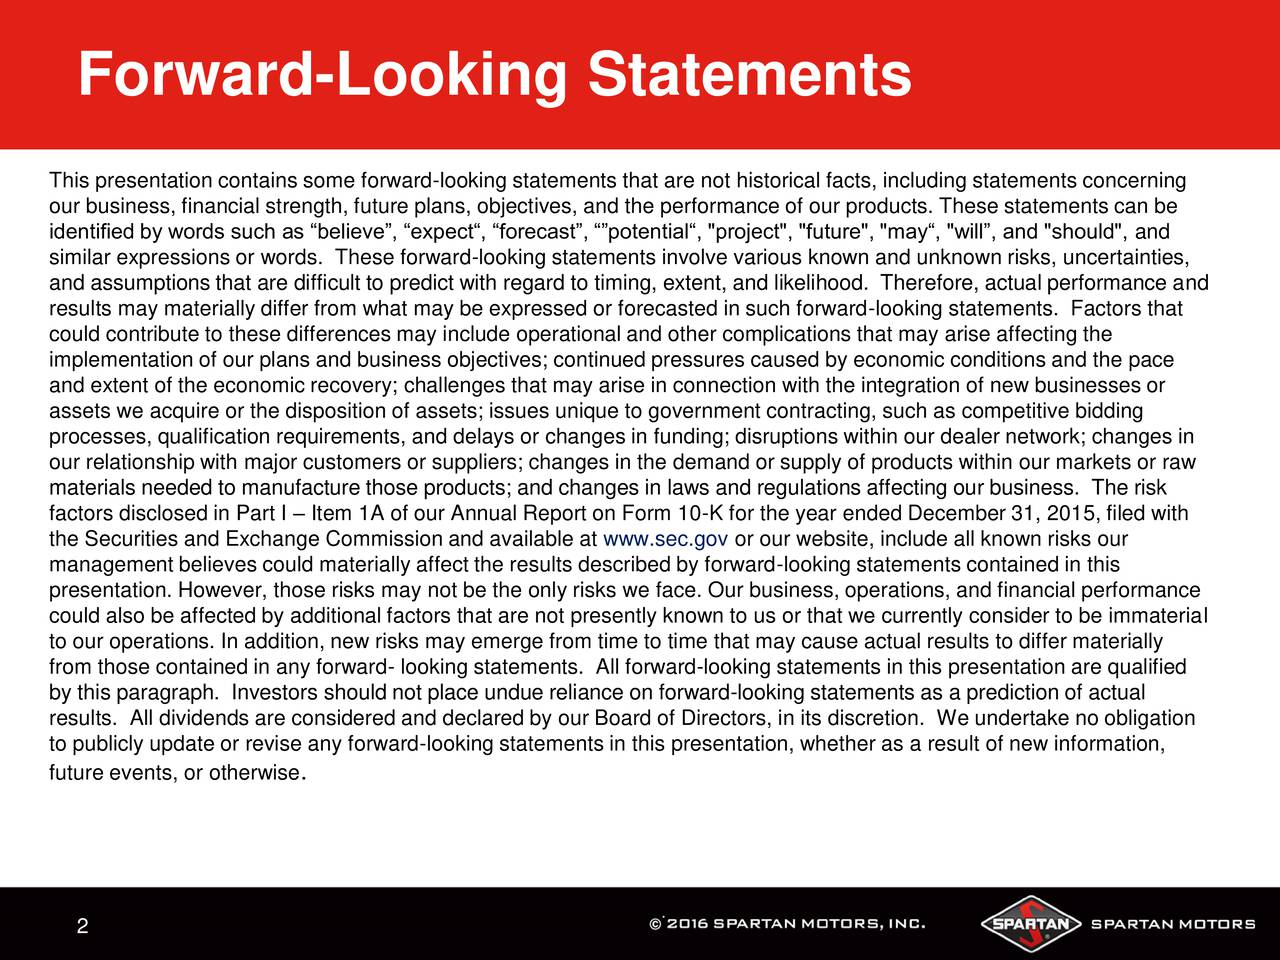 "This presentation contains some forward-looking statements that are not historical facts, including statements concerning our business, financial strength, future plans, objectives, and the performance of our products. These statements can be identified by words such as believe, expect, forecast, potential, ""project"", ""future"", ""may, ""will, and ""should"", and similar expressions or words. These forward-looking statements involve various known and unknown risks, uncertainties, and assumptions that are difficult to predict with regard to timing, extent, and likelihood. Therefore, actual performance and results may materially differ from what may be expressed or forecasted in such forward-looking statements. Factors that could contribute to these differences may include operational and other complications that may arise affecting the implementation of our plans and business objectives; continued pressures caused by economic conditions and the pace and extent of the economic recovery; challenges that may arise in connection with the integration of new businesses or assets we acquire or the disposition of assets; issues unique to government contracting, such as competitive bidding processes, qualification requirements, and delays or changes in funding; disruptions within our dealer network; changes in our relationship with major customers or suppliers; changes in the demand or supply of products within our markets or raw materials needed to manufacture those products; and changes in laws and regulations affecting our business. The risk factors disclosed in Part I  Item 1A of our Annual Report on Form 10-K for the year ended December 31, 2015, filed with the Securities and Exchange Commission and available at www.sec.gov or our website, include all known risks our management believes could materially affect the results described by forward-looking statements contained in this presentation. However, those risks may not be the only risks we face. Our business, operations, and financial performance could also be affected by additional factors that are not presently known to us or that we currently consider to be immaterial to our operations. In addition, new risks may emerge from time to time that may cause actual results to differ materially from those contained in any forward- looking statements. All forward-looking statements in this presentation are qualified by this paragraph. Investors should not place undue reliance on forward-looking statements as a prediction of actual results. All dividends are considered and declared by our Board of Directors, in its discretion. We undertake no obligation to publicly update or revise any forward-looking statements in this presentation, whether as a result of new information, future events, or otherwis. 2"